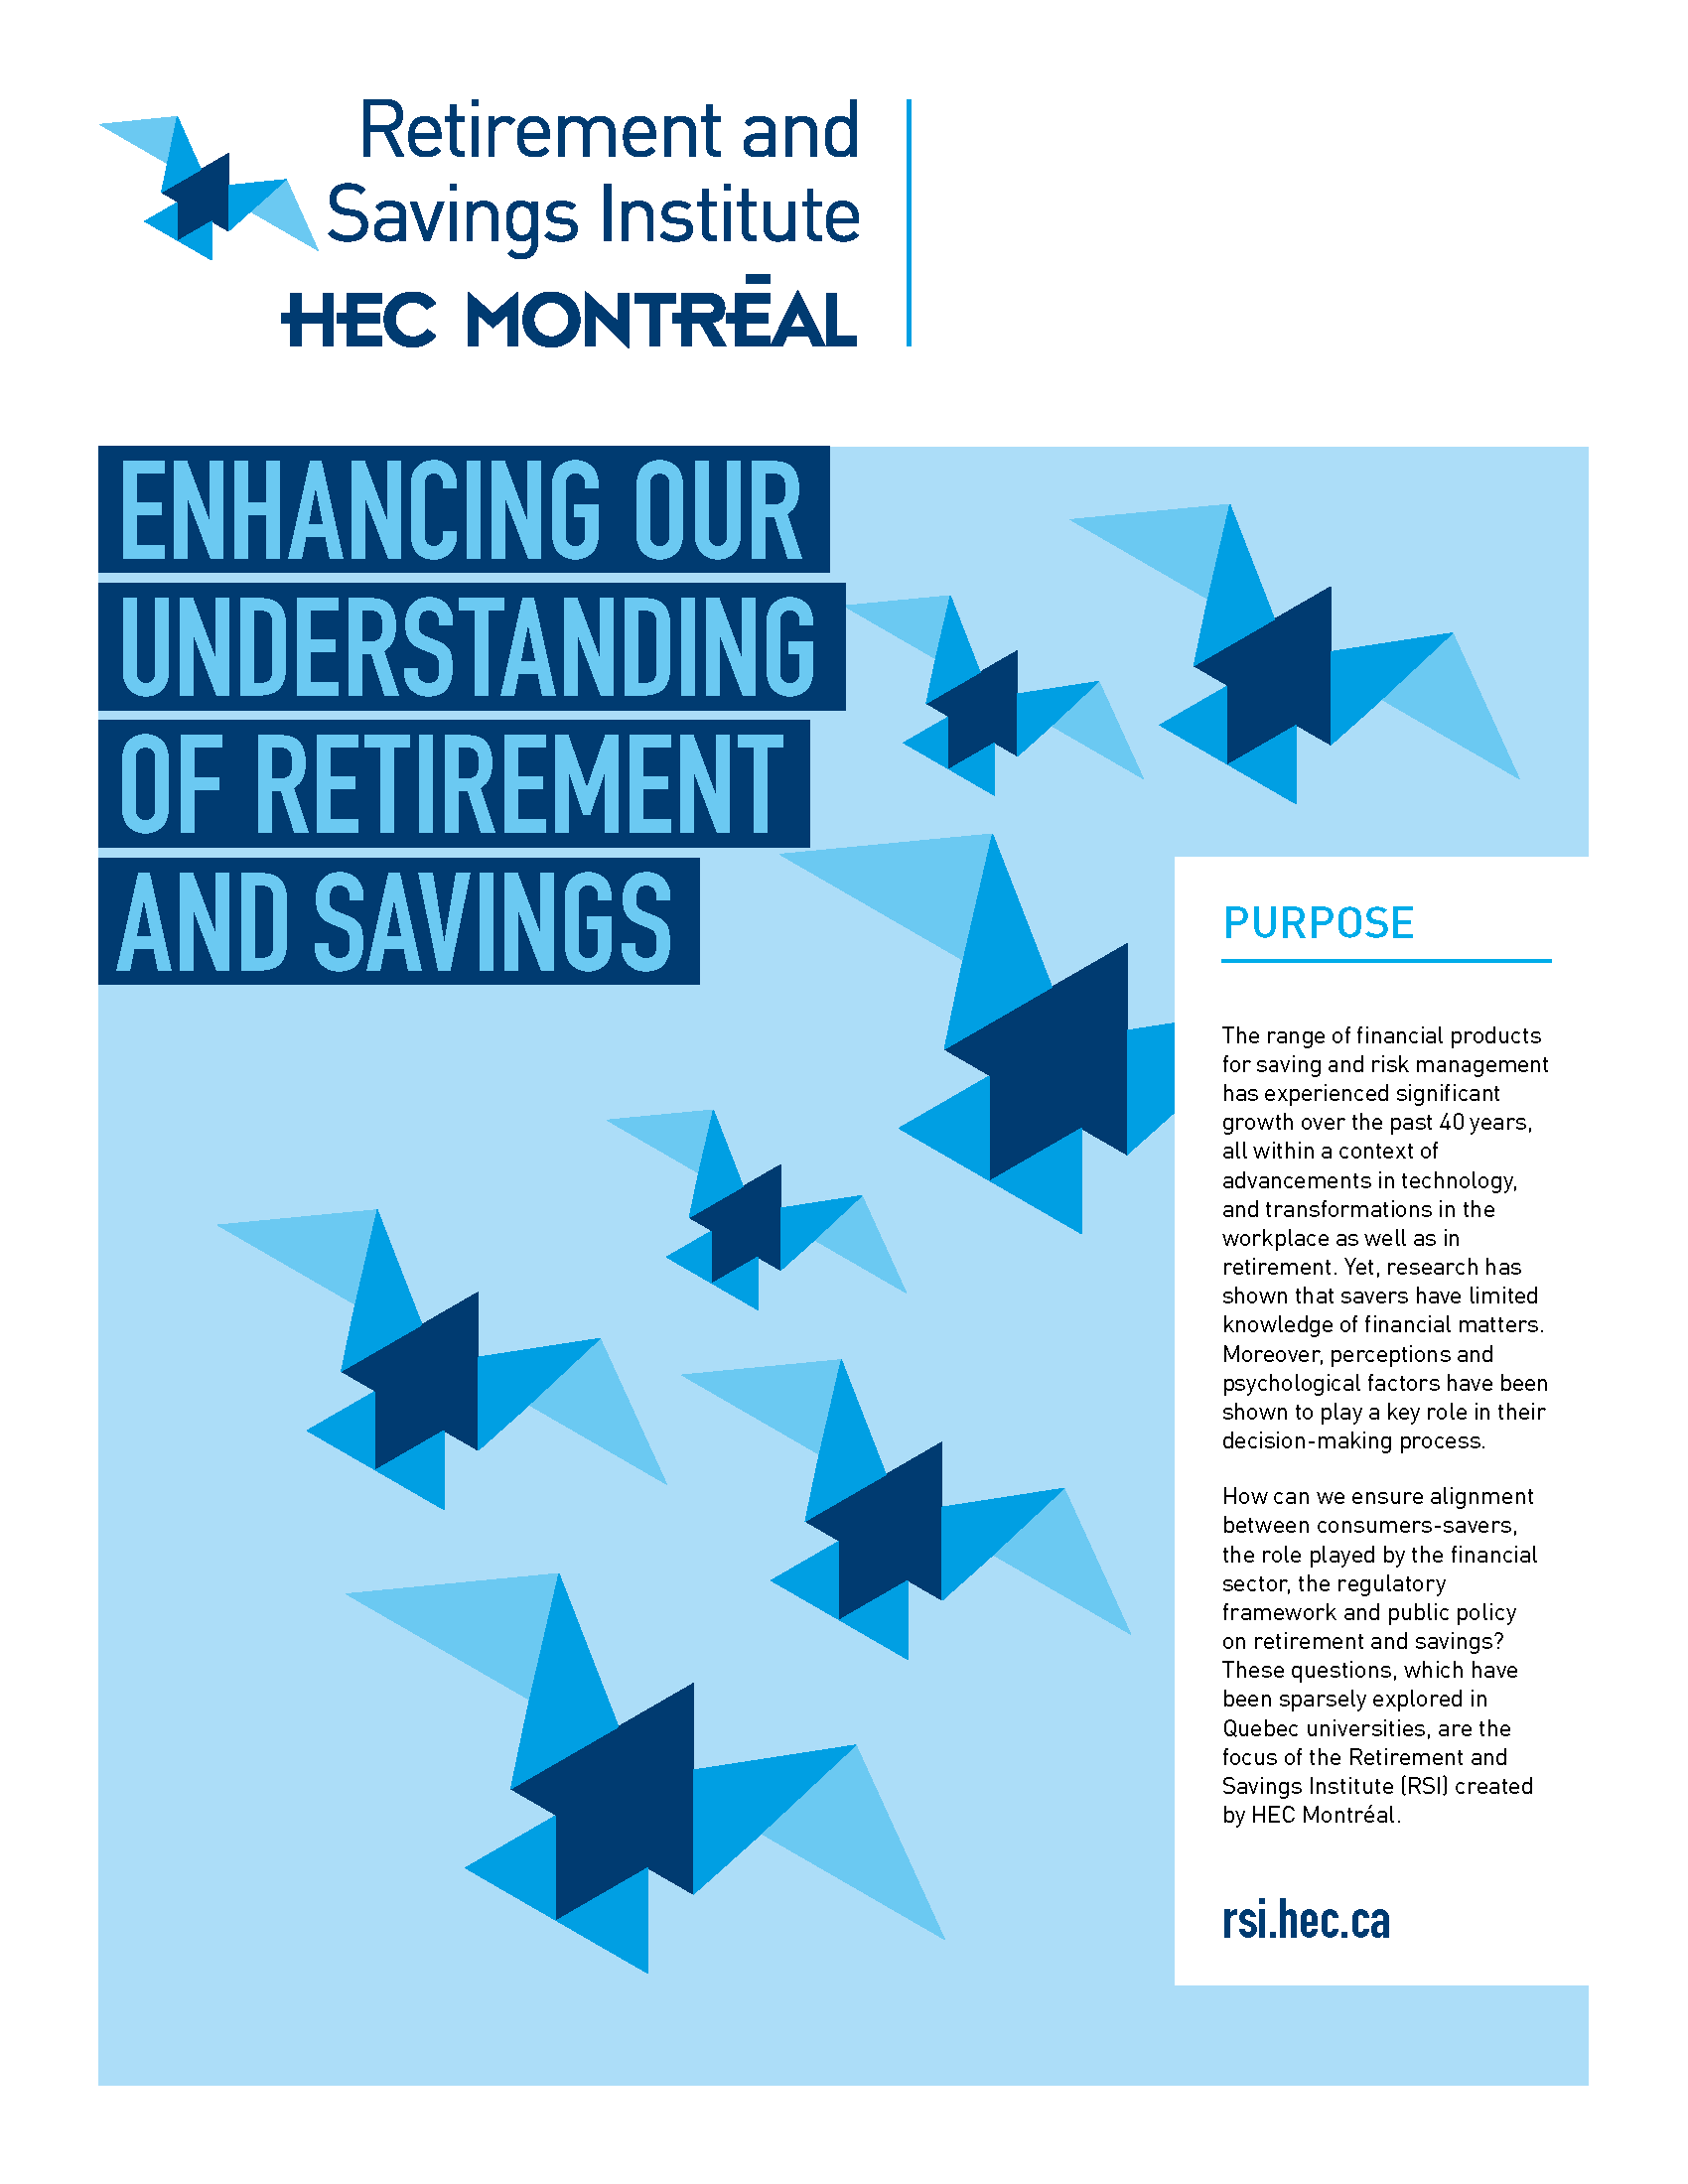 Descriptive Brochure of the Retirement and Savings Institute